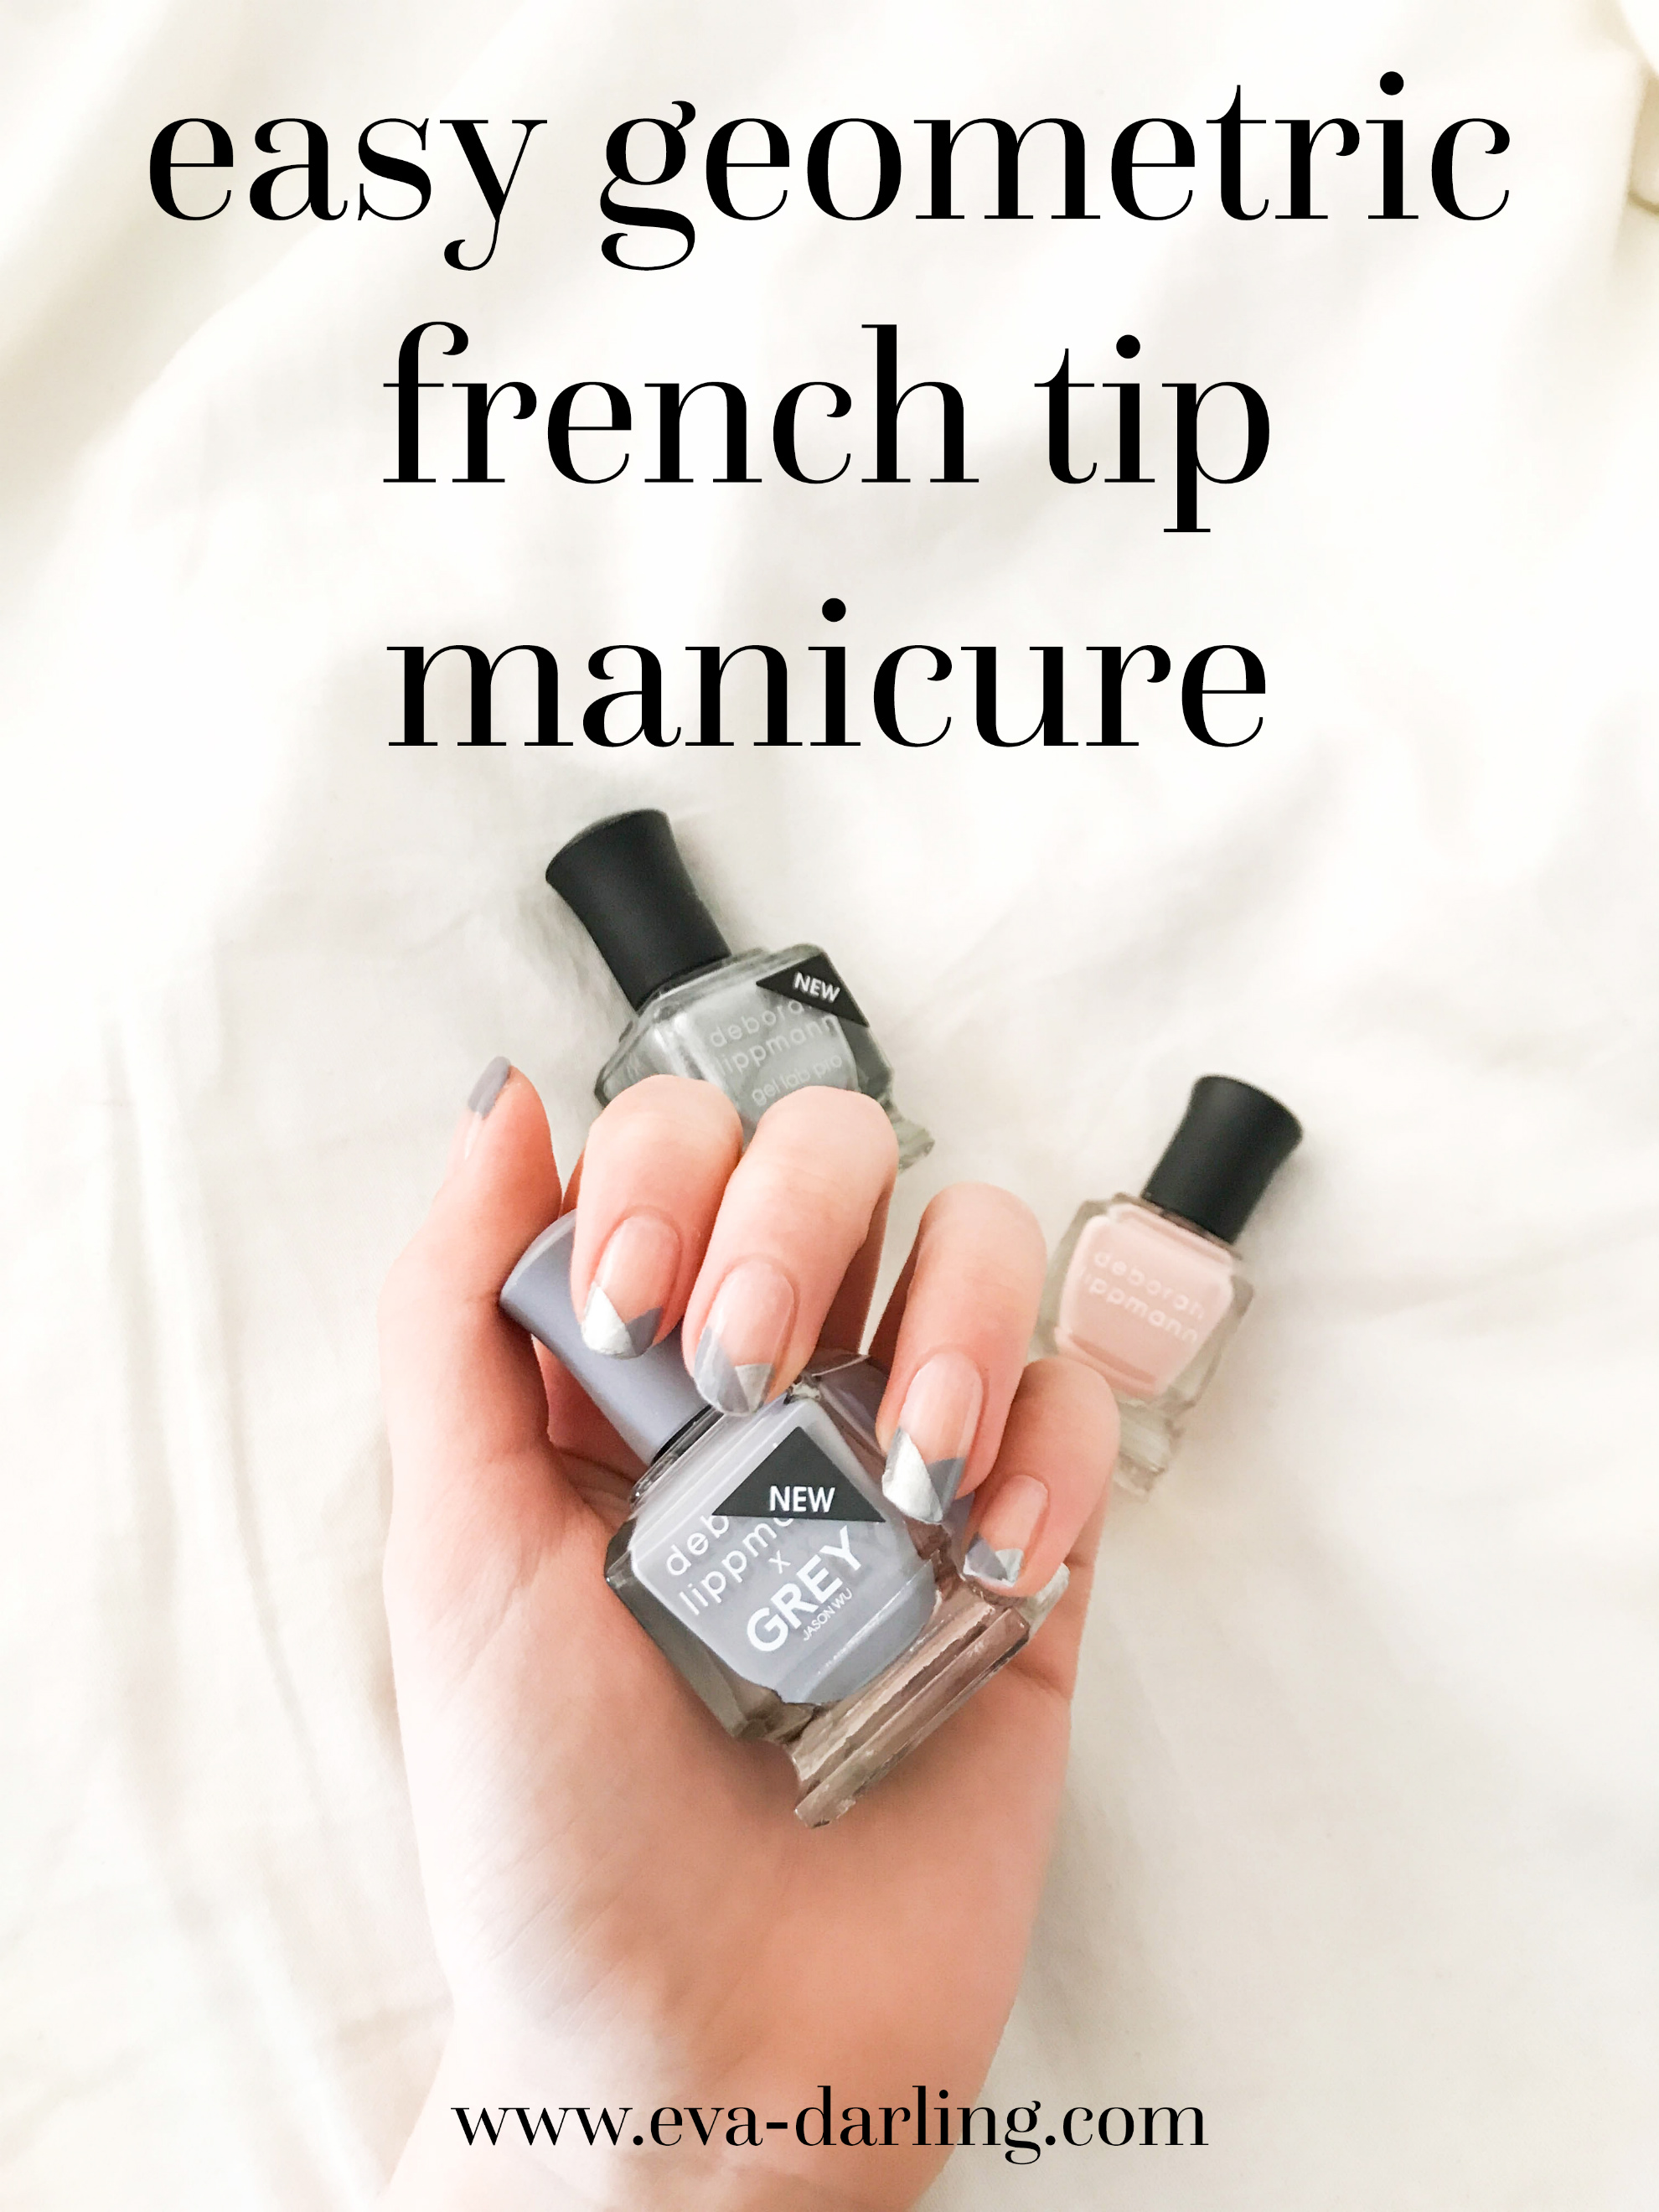 geometric french tip manicure beauty hack hacks deborah lippmann gray grey light pink silver nail polish jason wu lacquer easy quick simple minimalist nail art tutorial